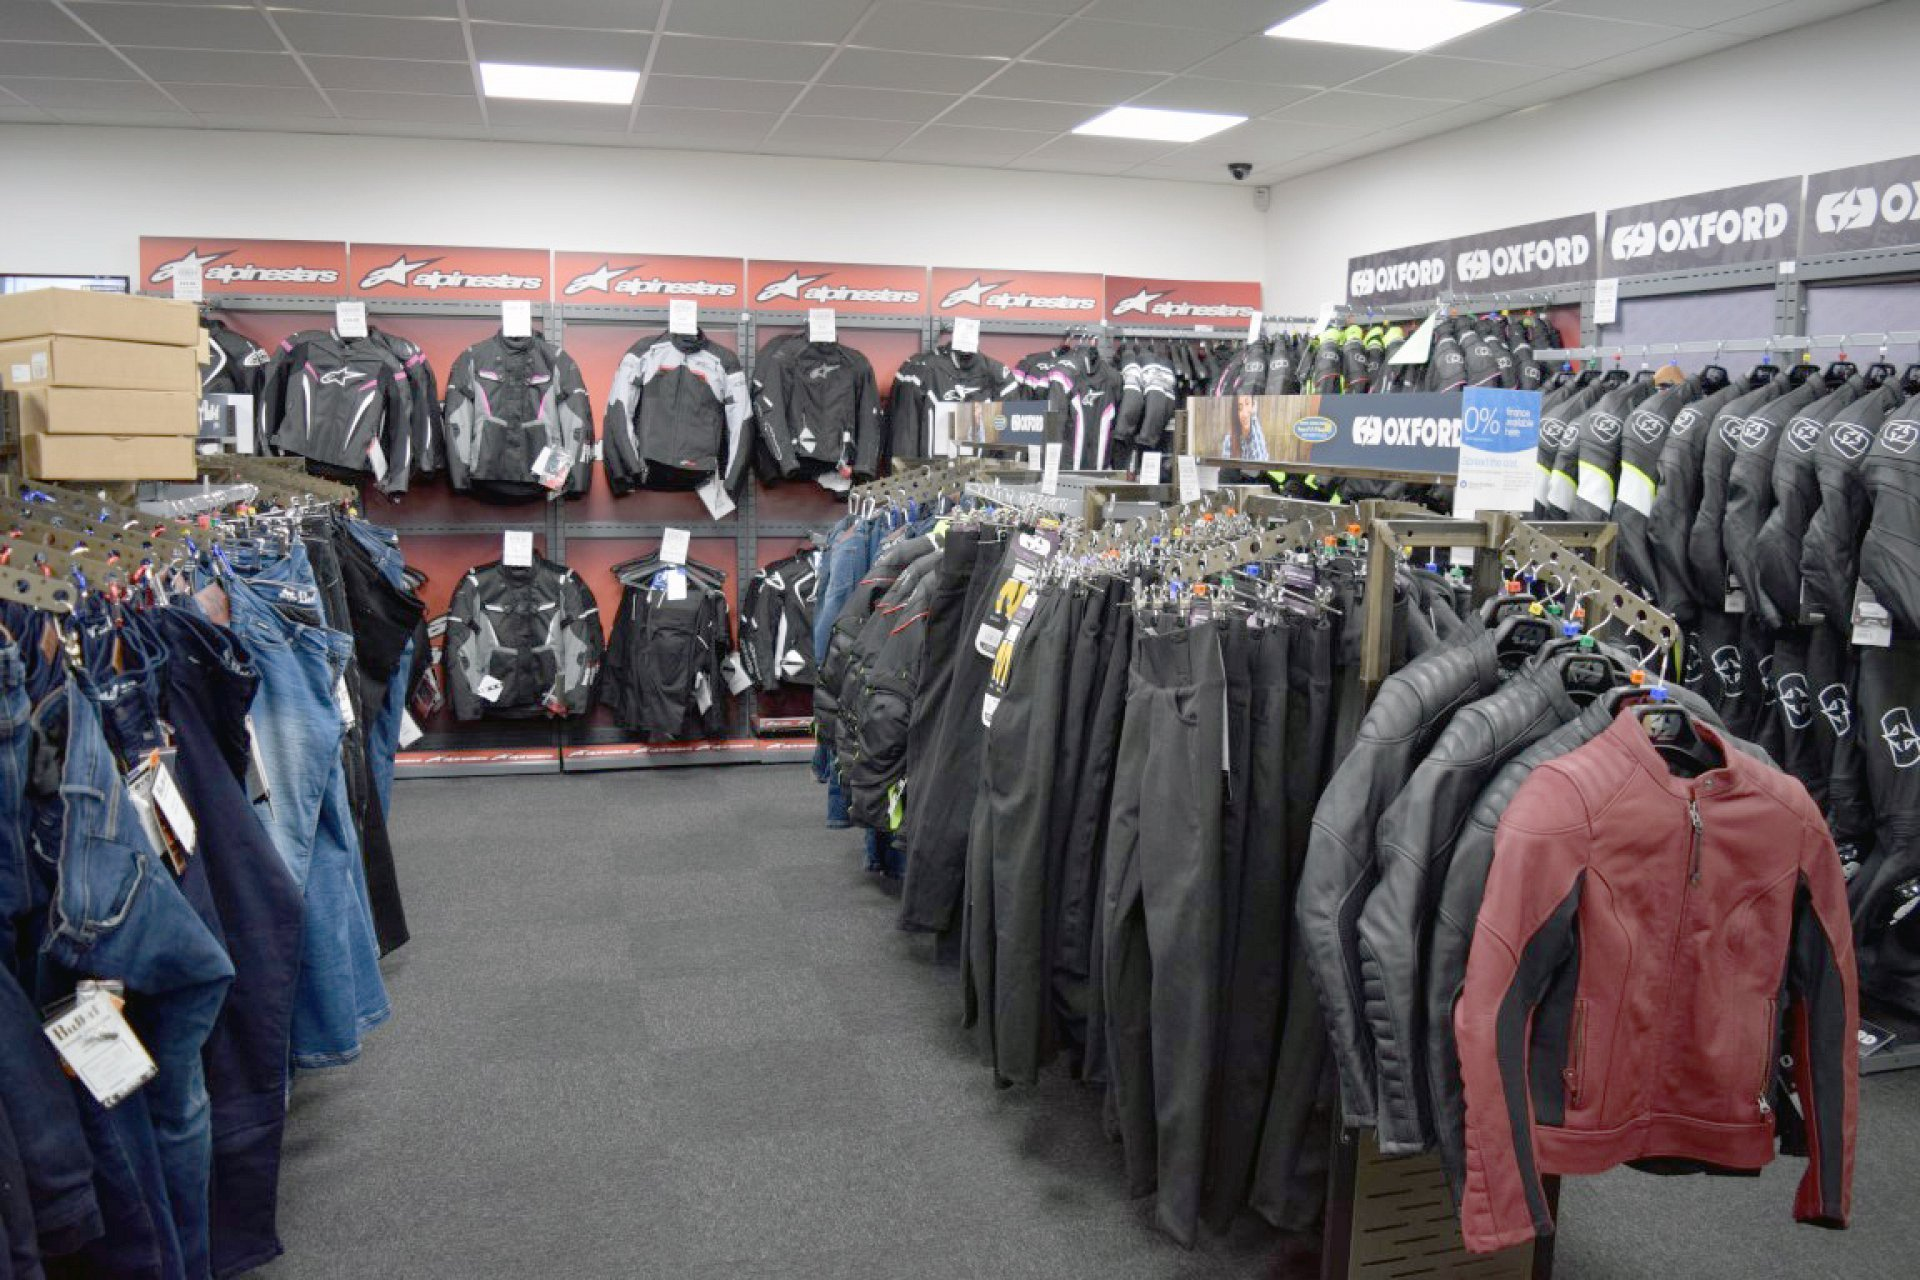 Motorcycle Dealer, Used and New bikes for sale, Clothing